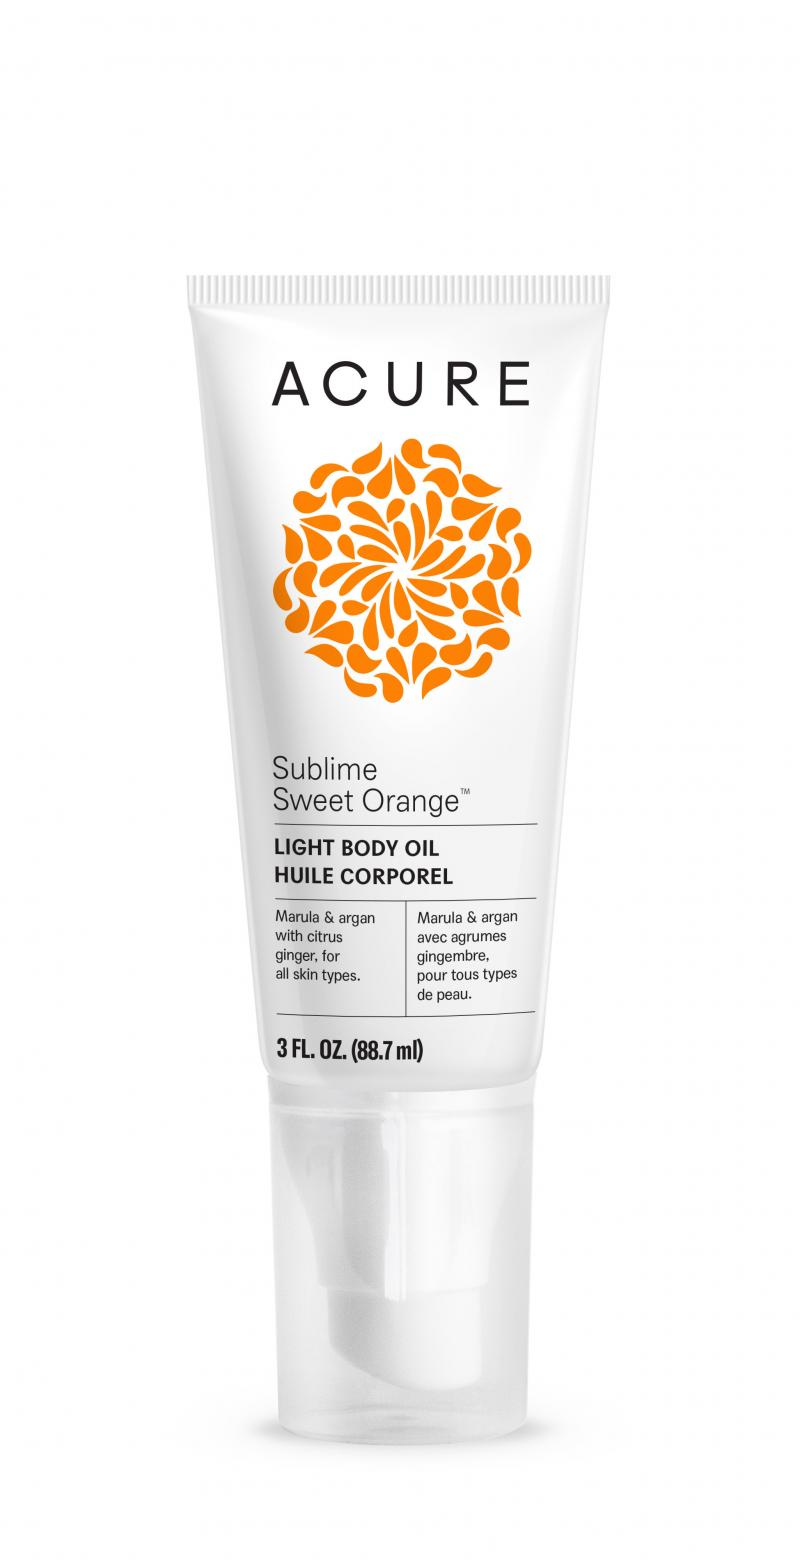 Light Body Oil, Sublime Sweet Orange